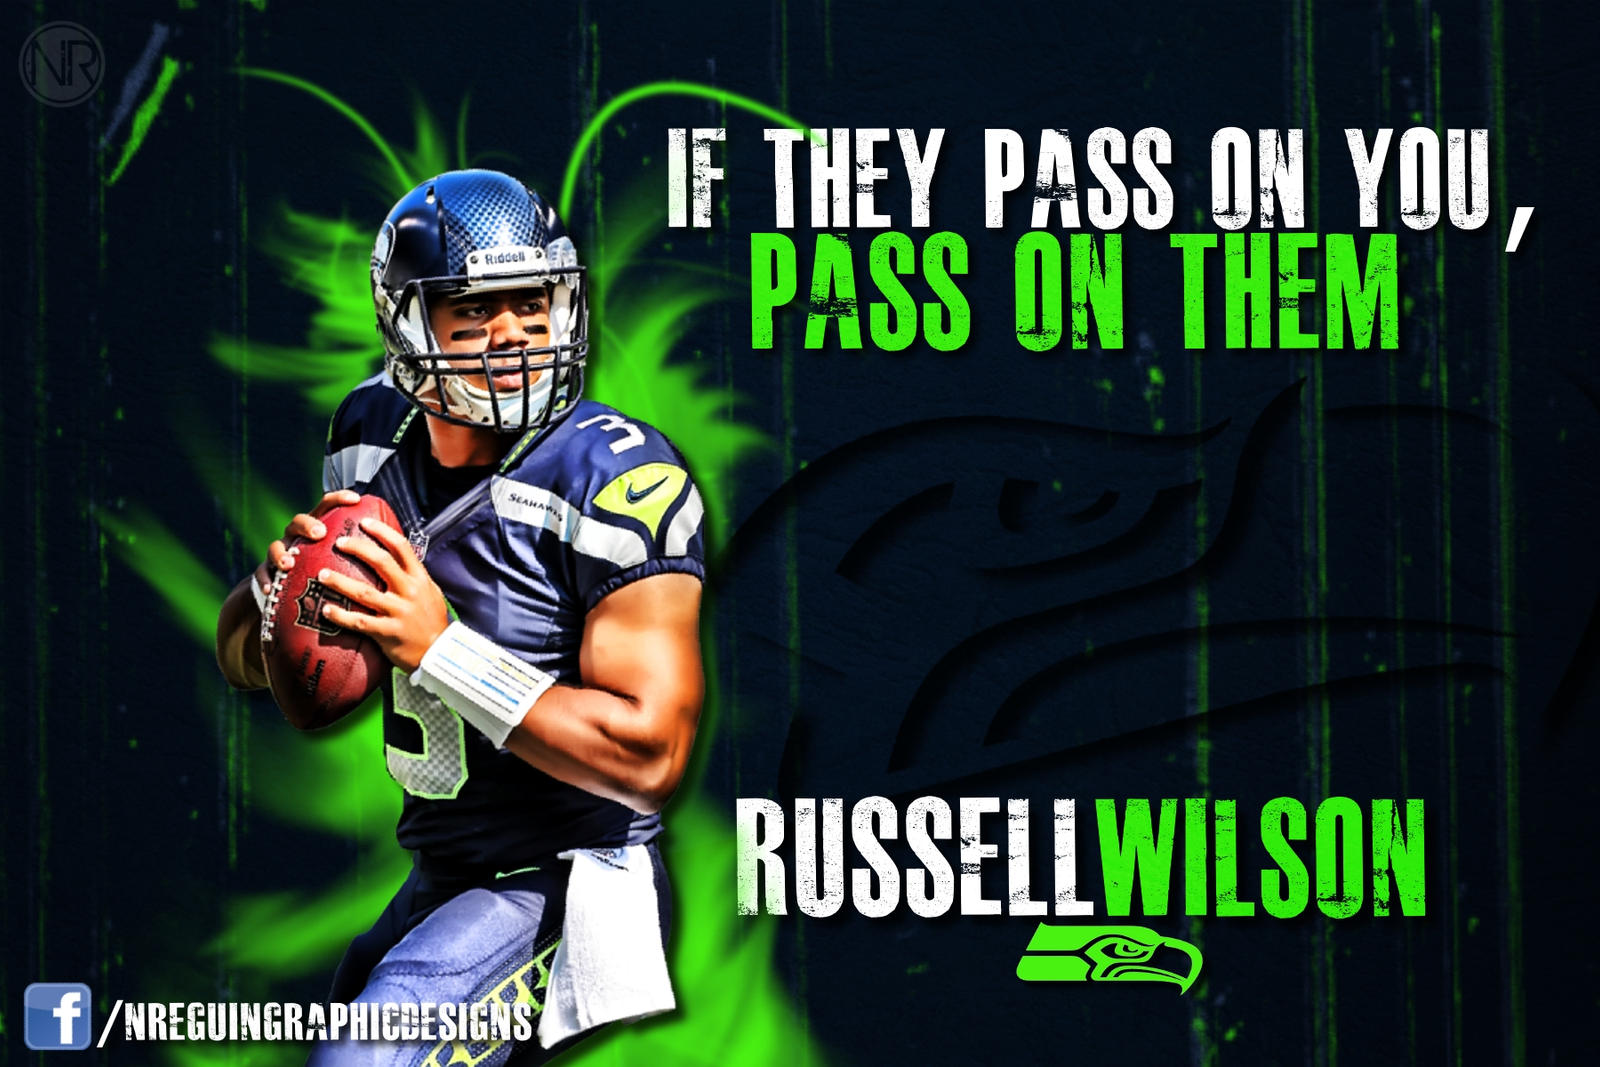 NReguinGraphicDesign HD Russell Wilson Green Pass On Them Wallpaper By